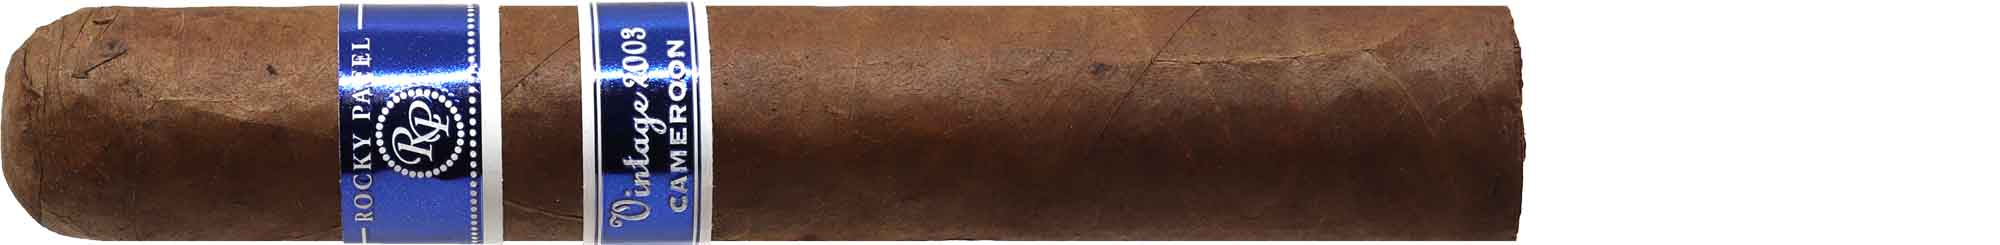 Rocky Patel Vintage Series 2003 Cameroon Sixty